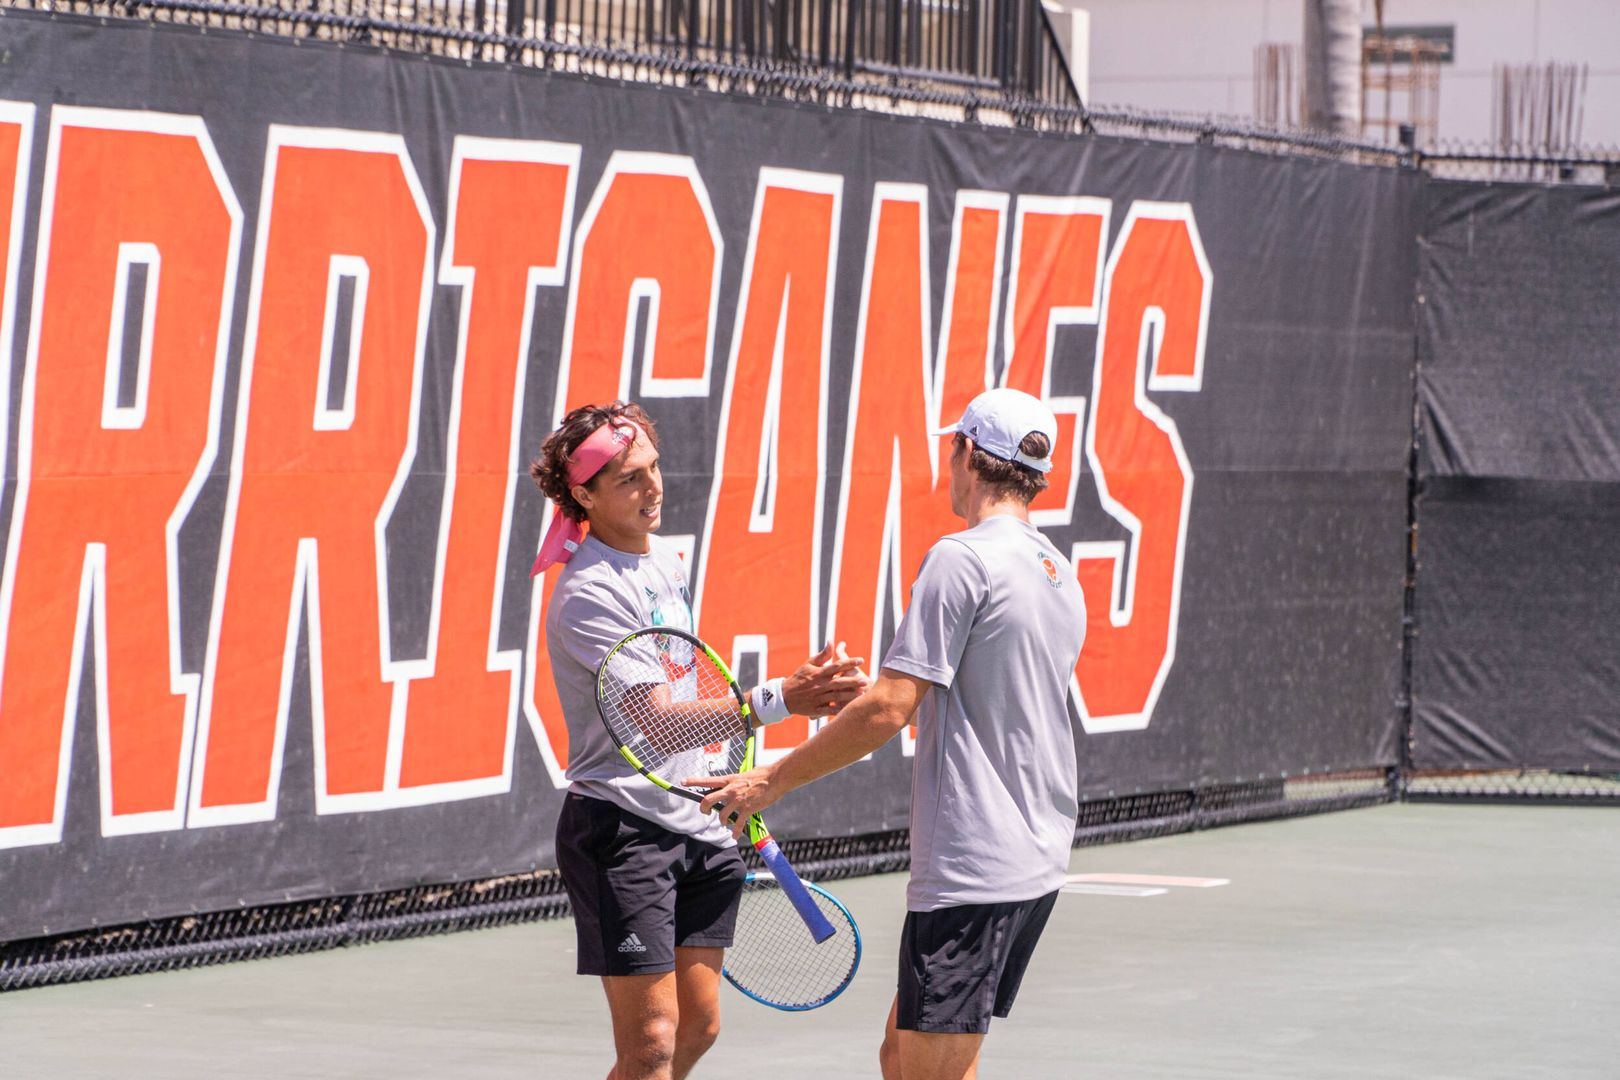 Aubone and Hannestad Named ACC Doubles Team of the Week